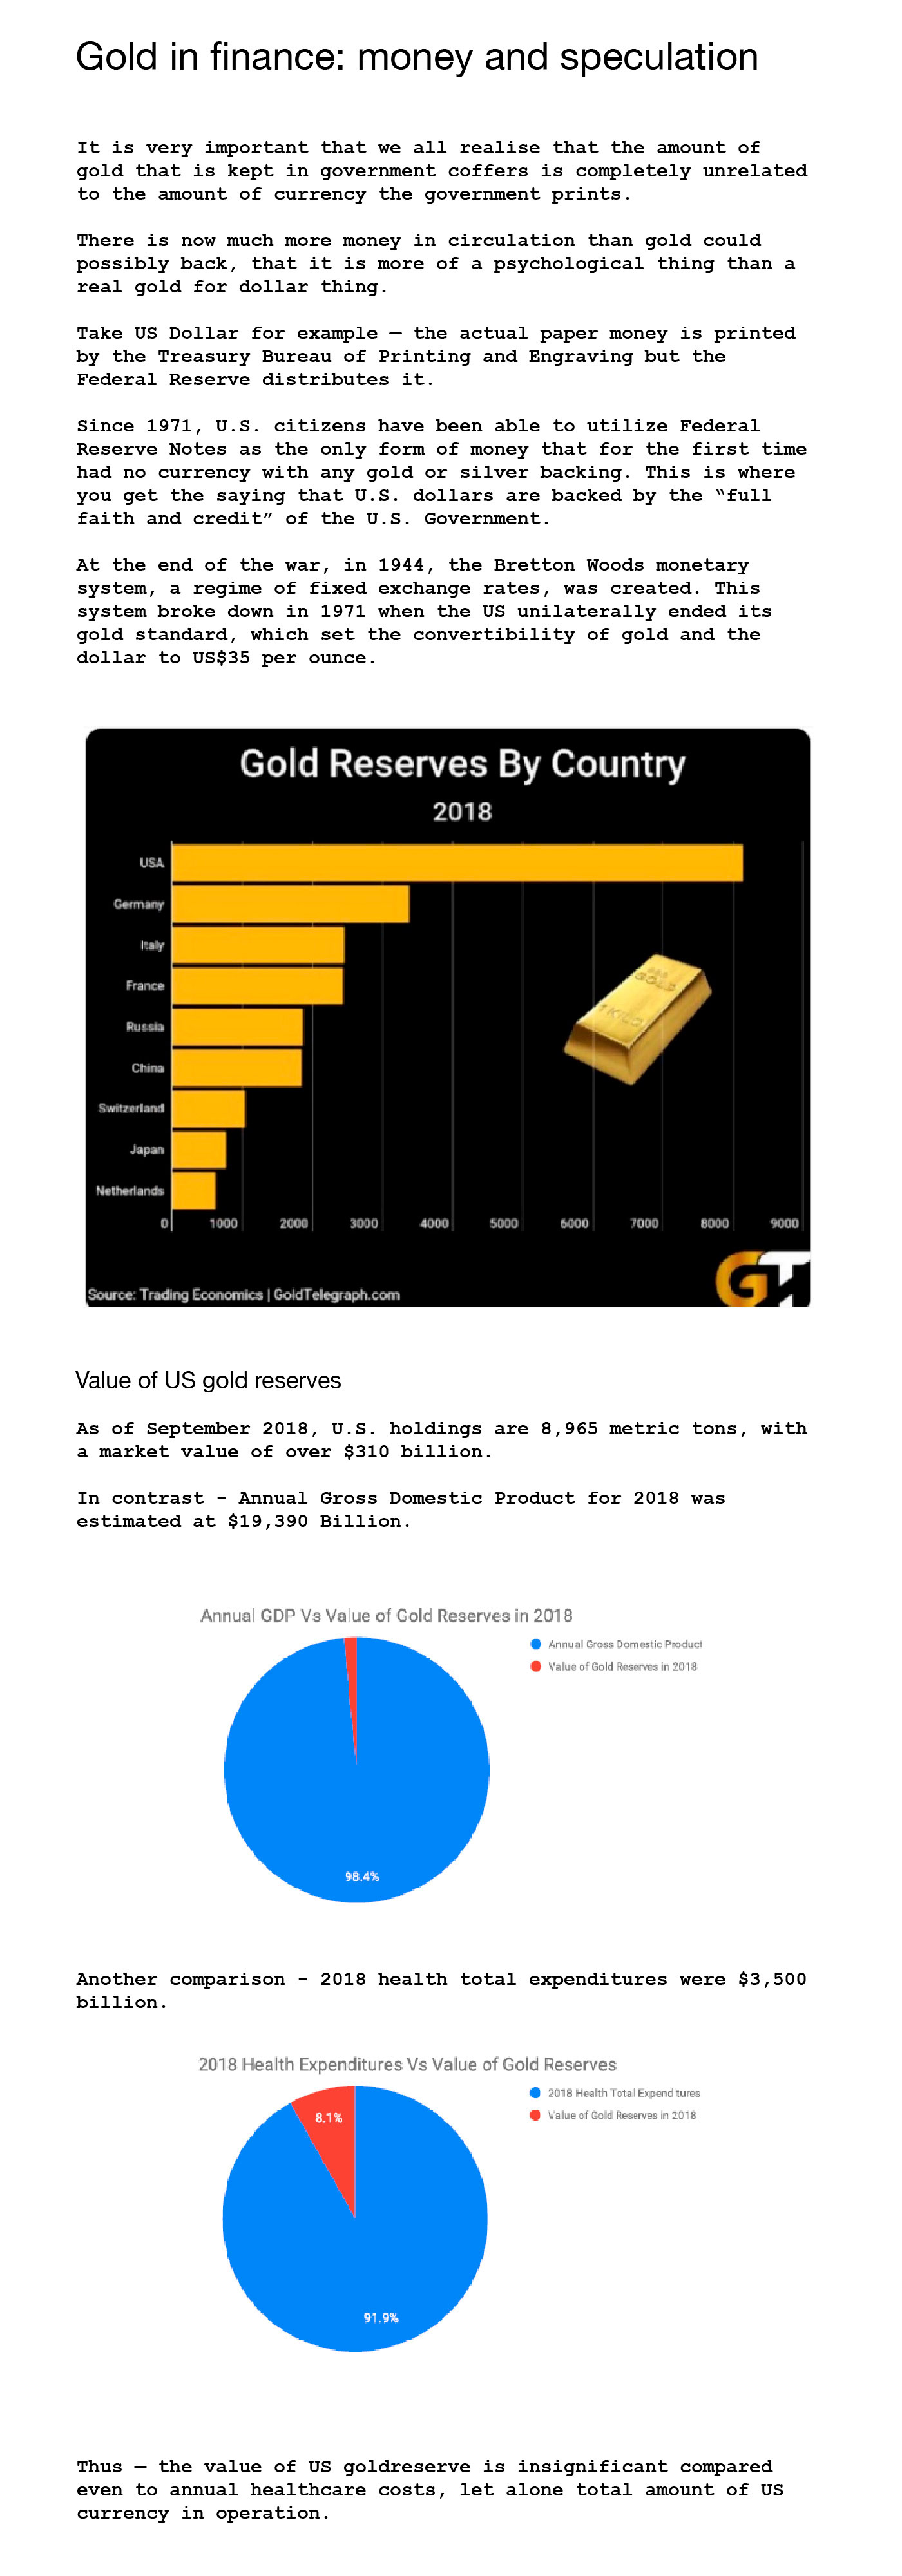 Gold in finance: money and speculation